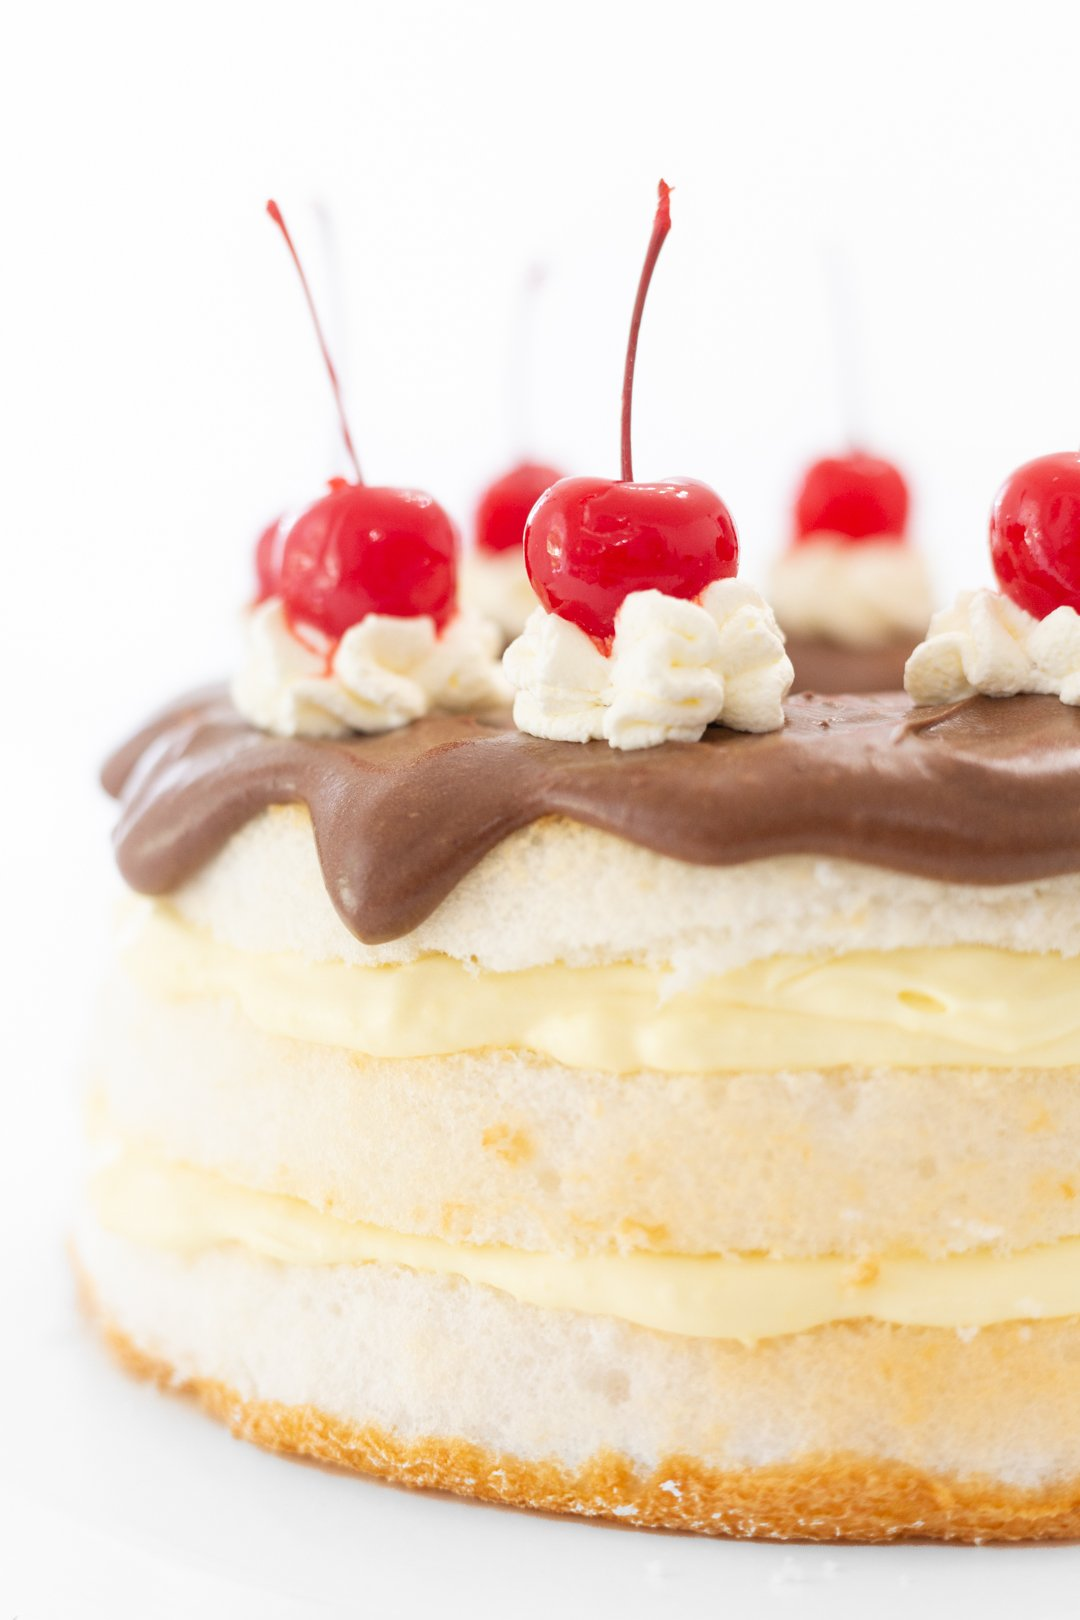 Easy Boston Cream Pie Cake Hack with Giant maraschino cherries. Yum.